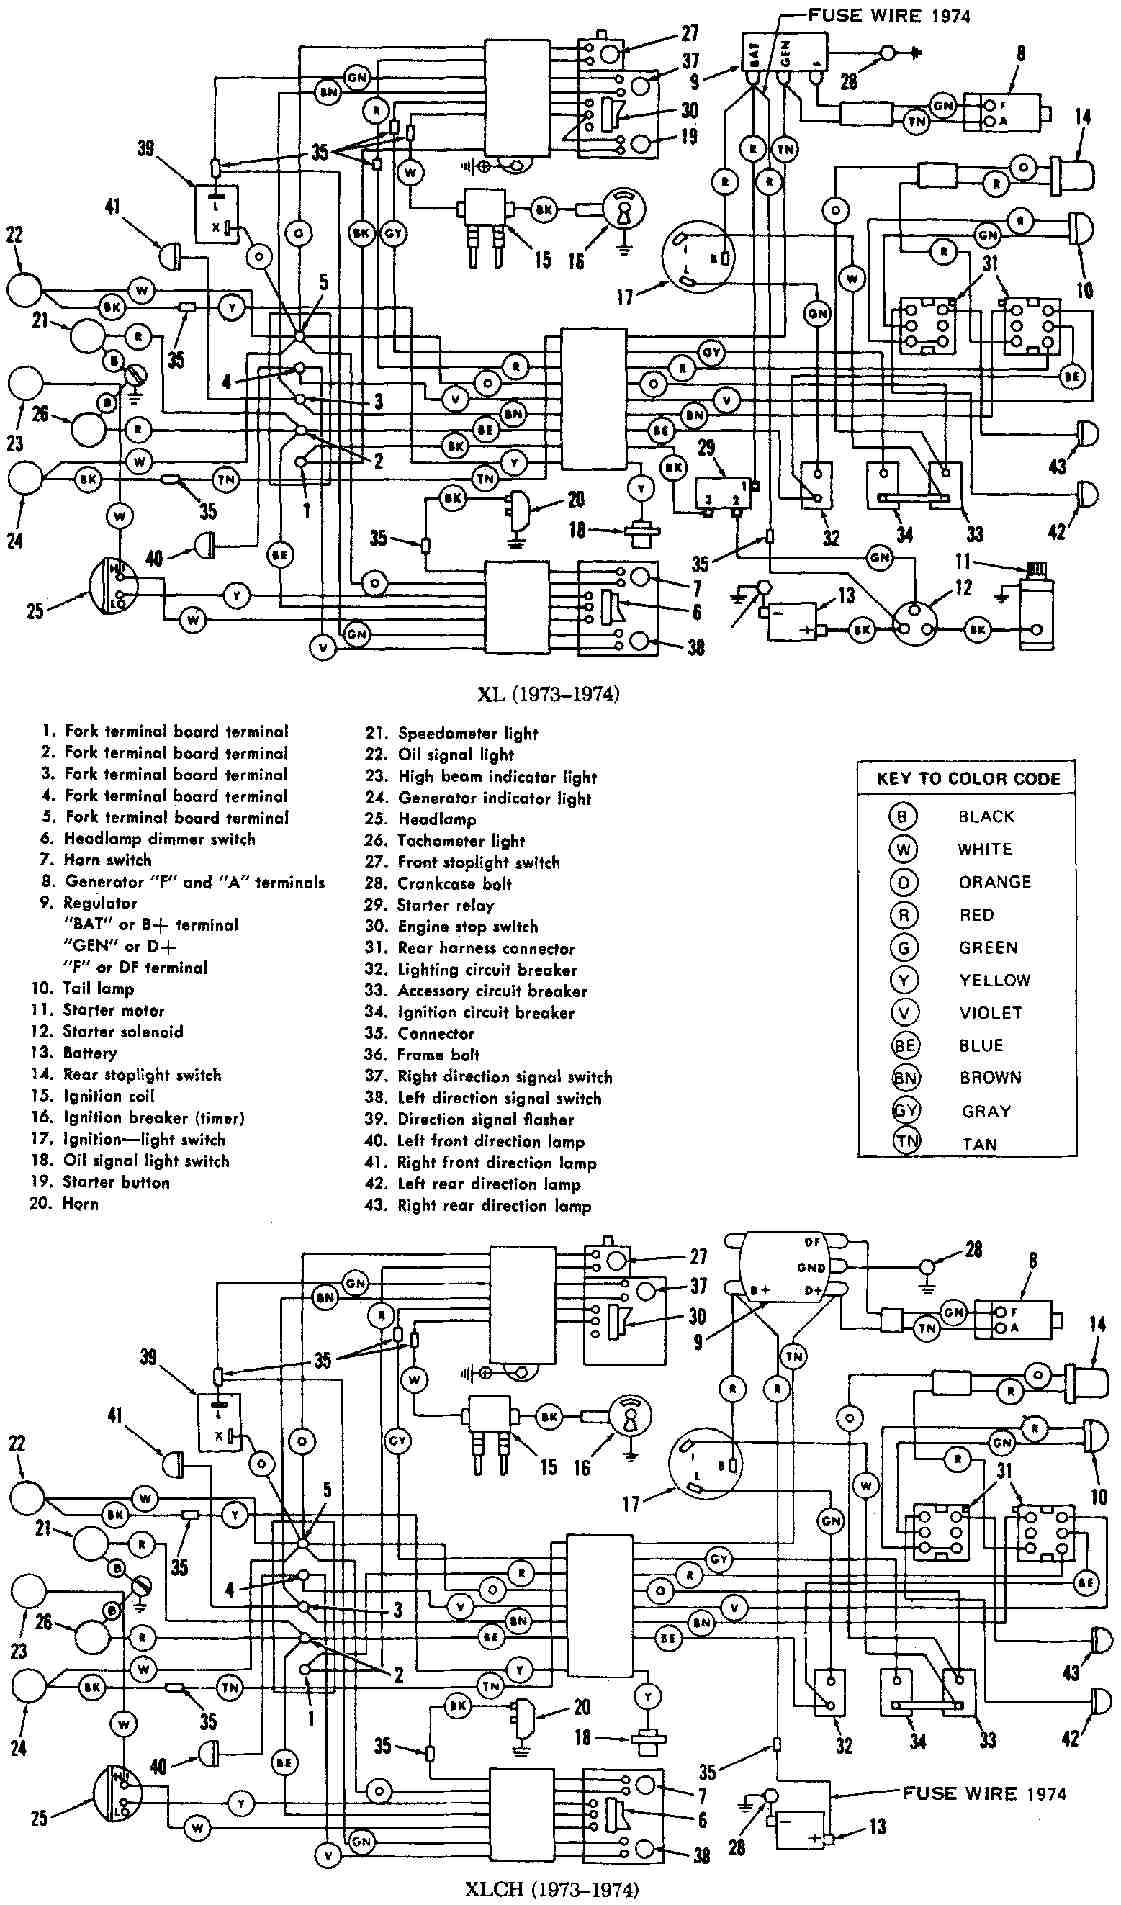 wiring diagram for 2009 harley touring [ 1121 x 1905 Pixel ]